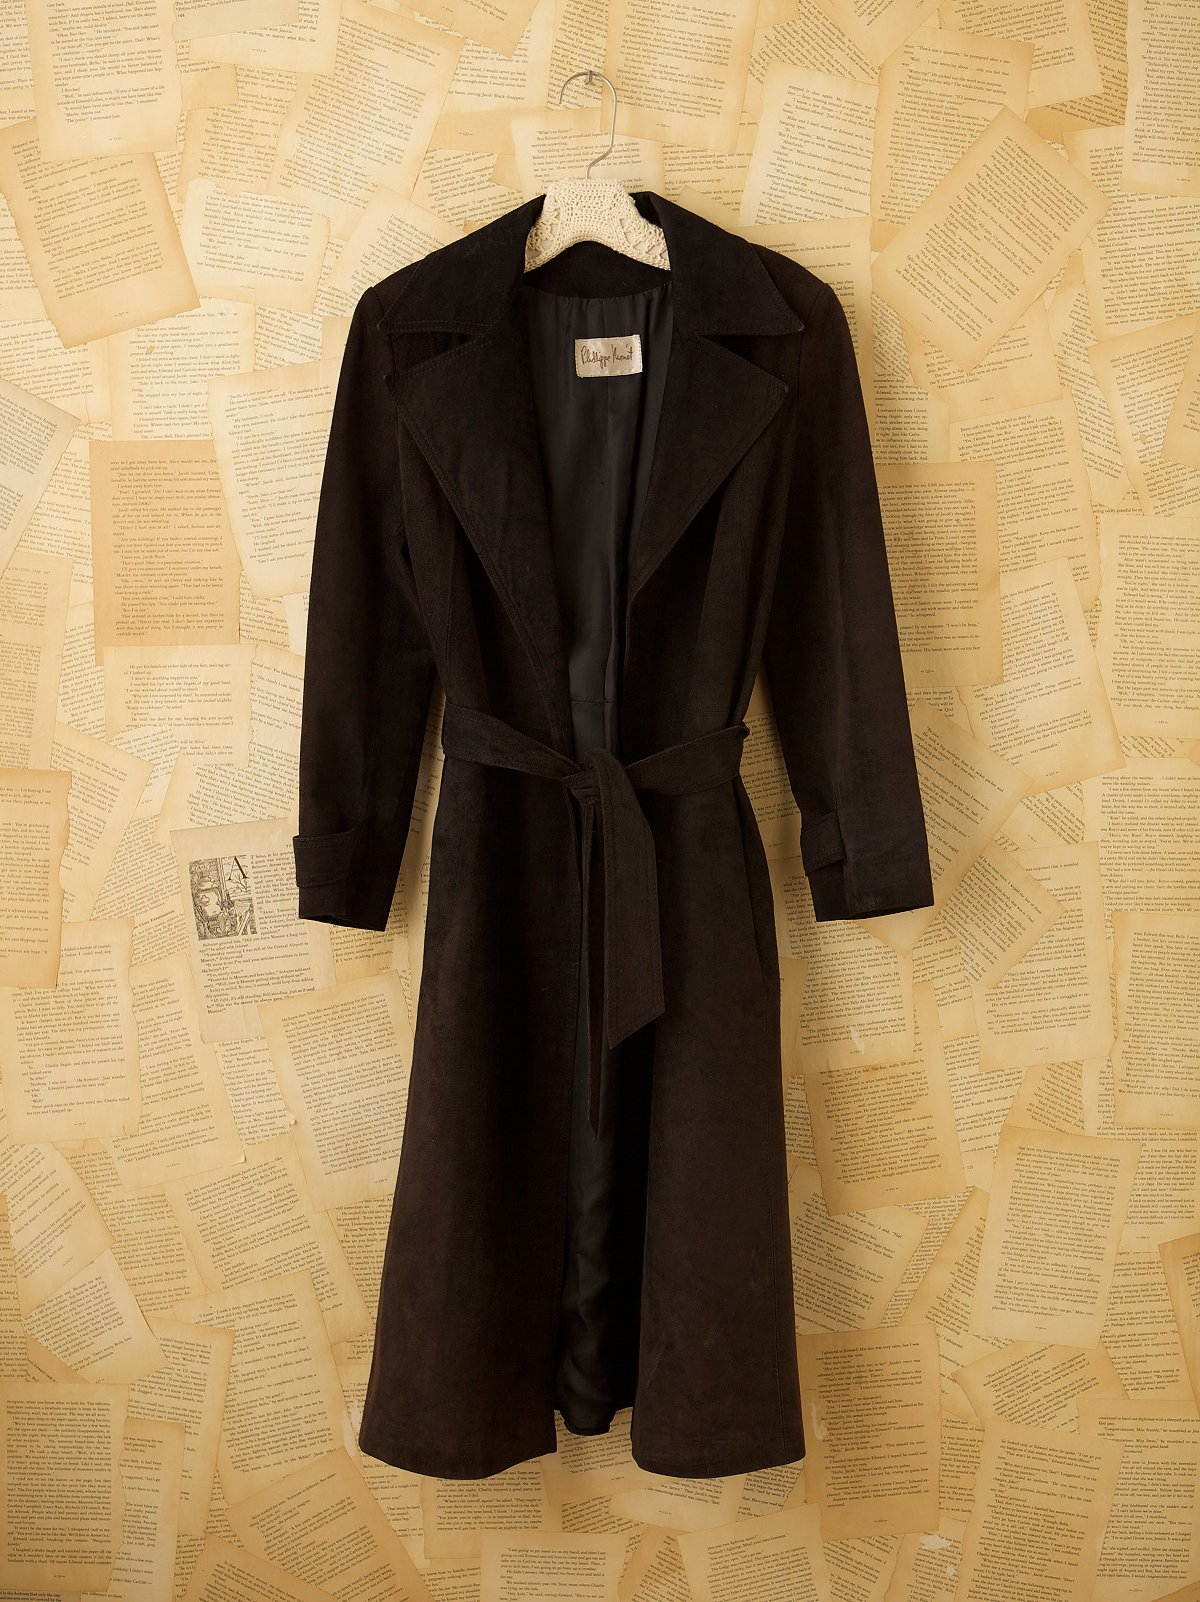 Vintage Glove Leather Coat